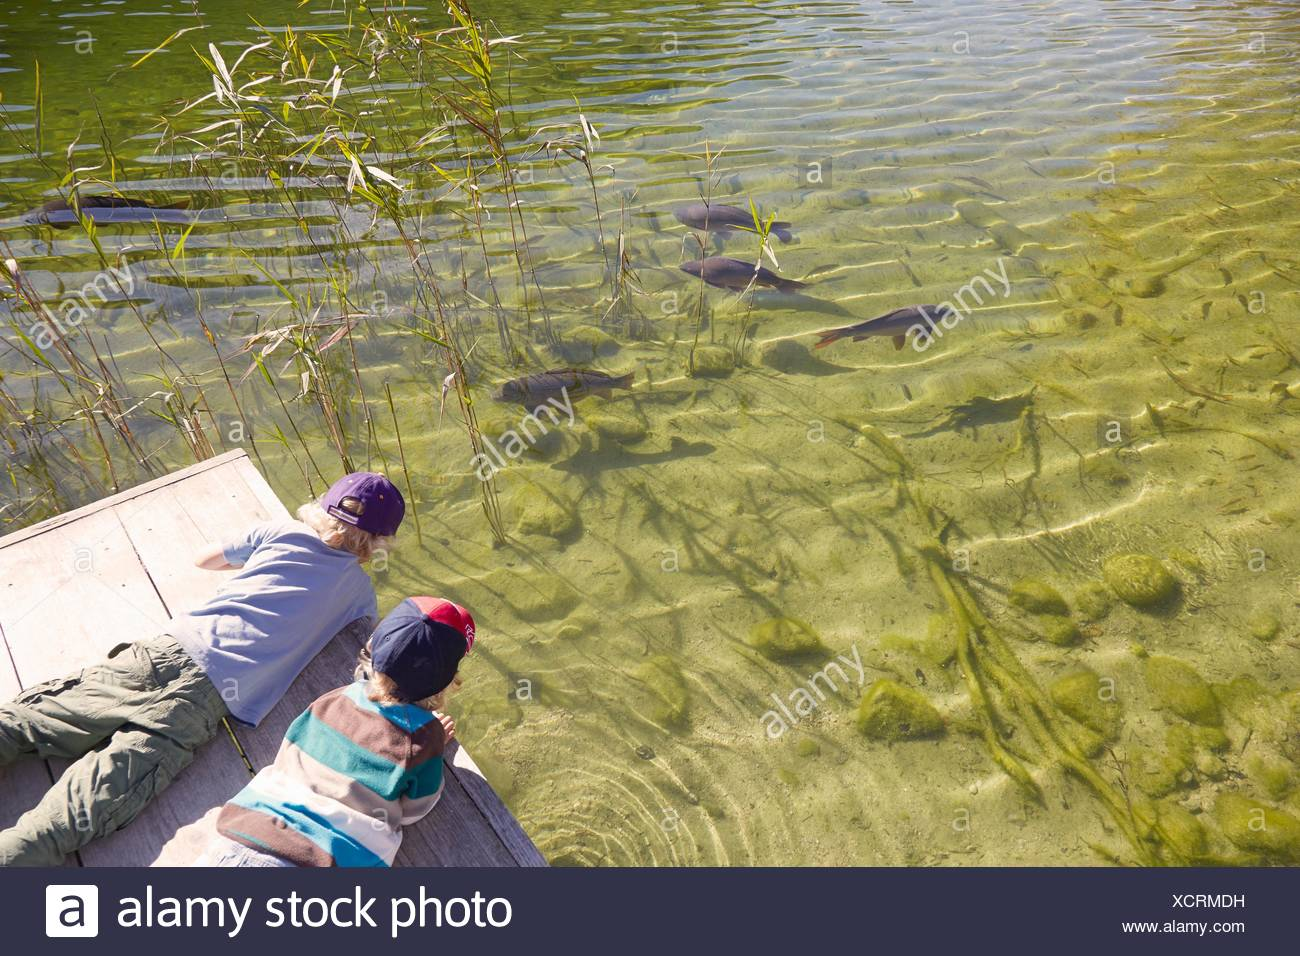 Two boys lying on jetty, looking in water, elevated vew - Stock Image